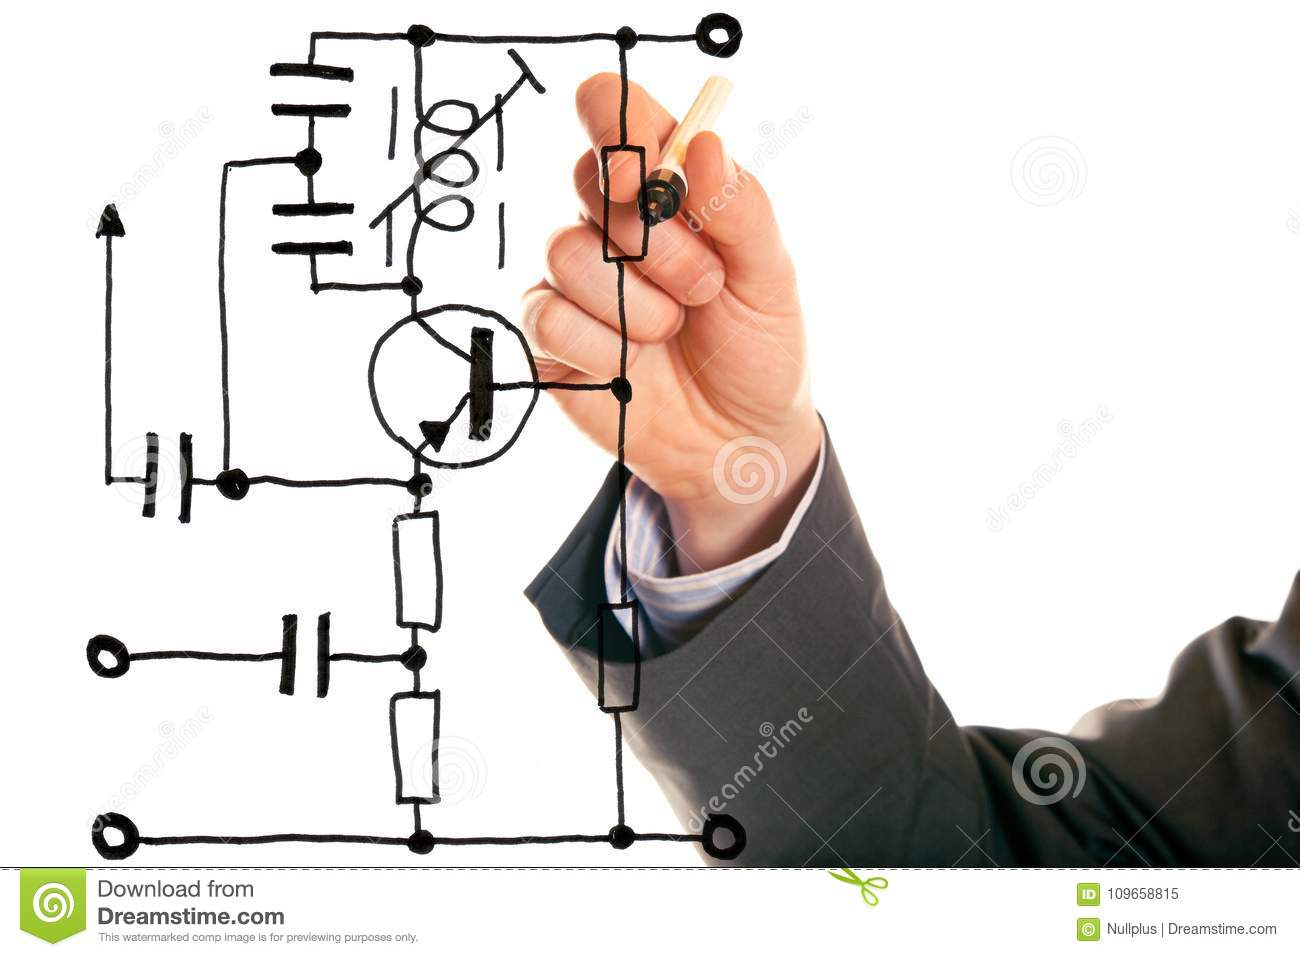 Electrical Engineering Concept Stock Image Of Whiteboard Drawing Electric Circuits